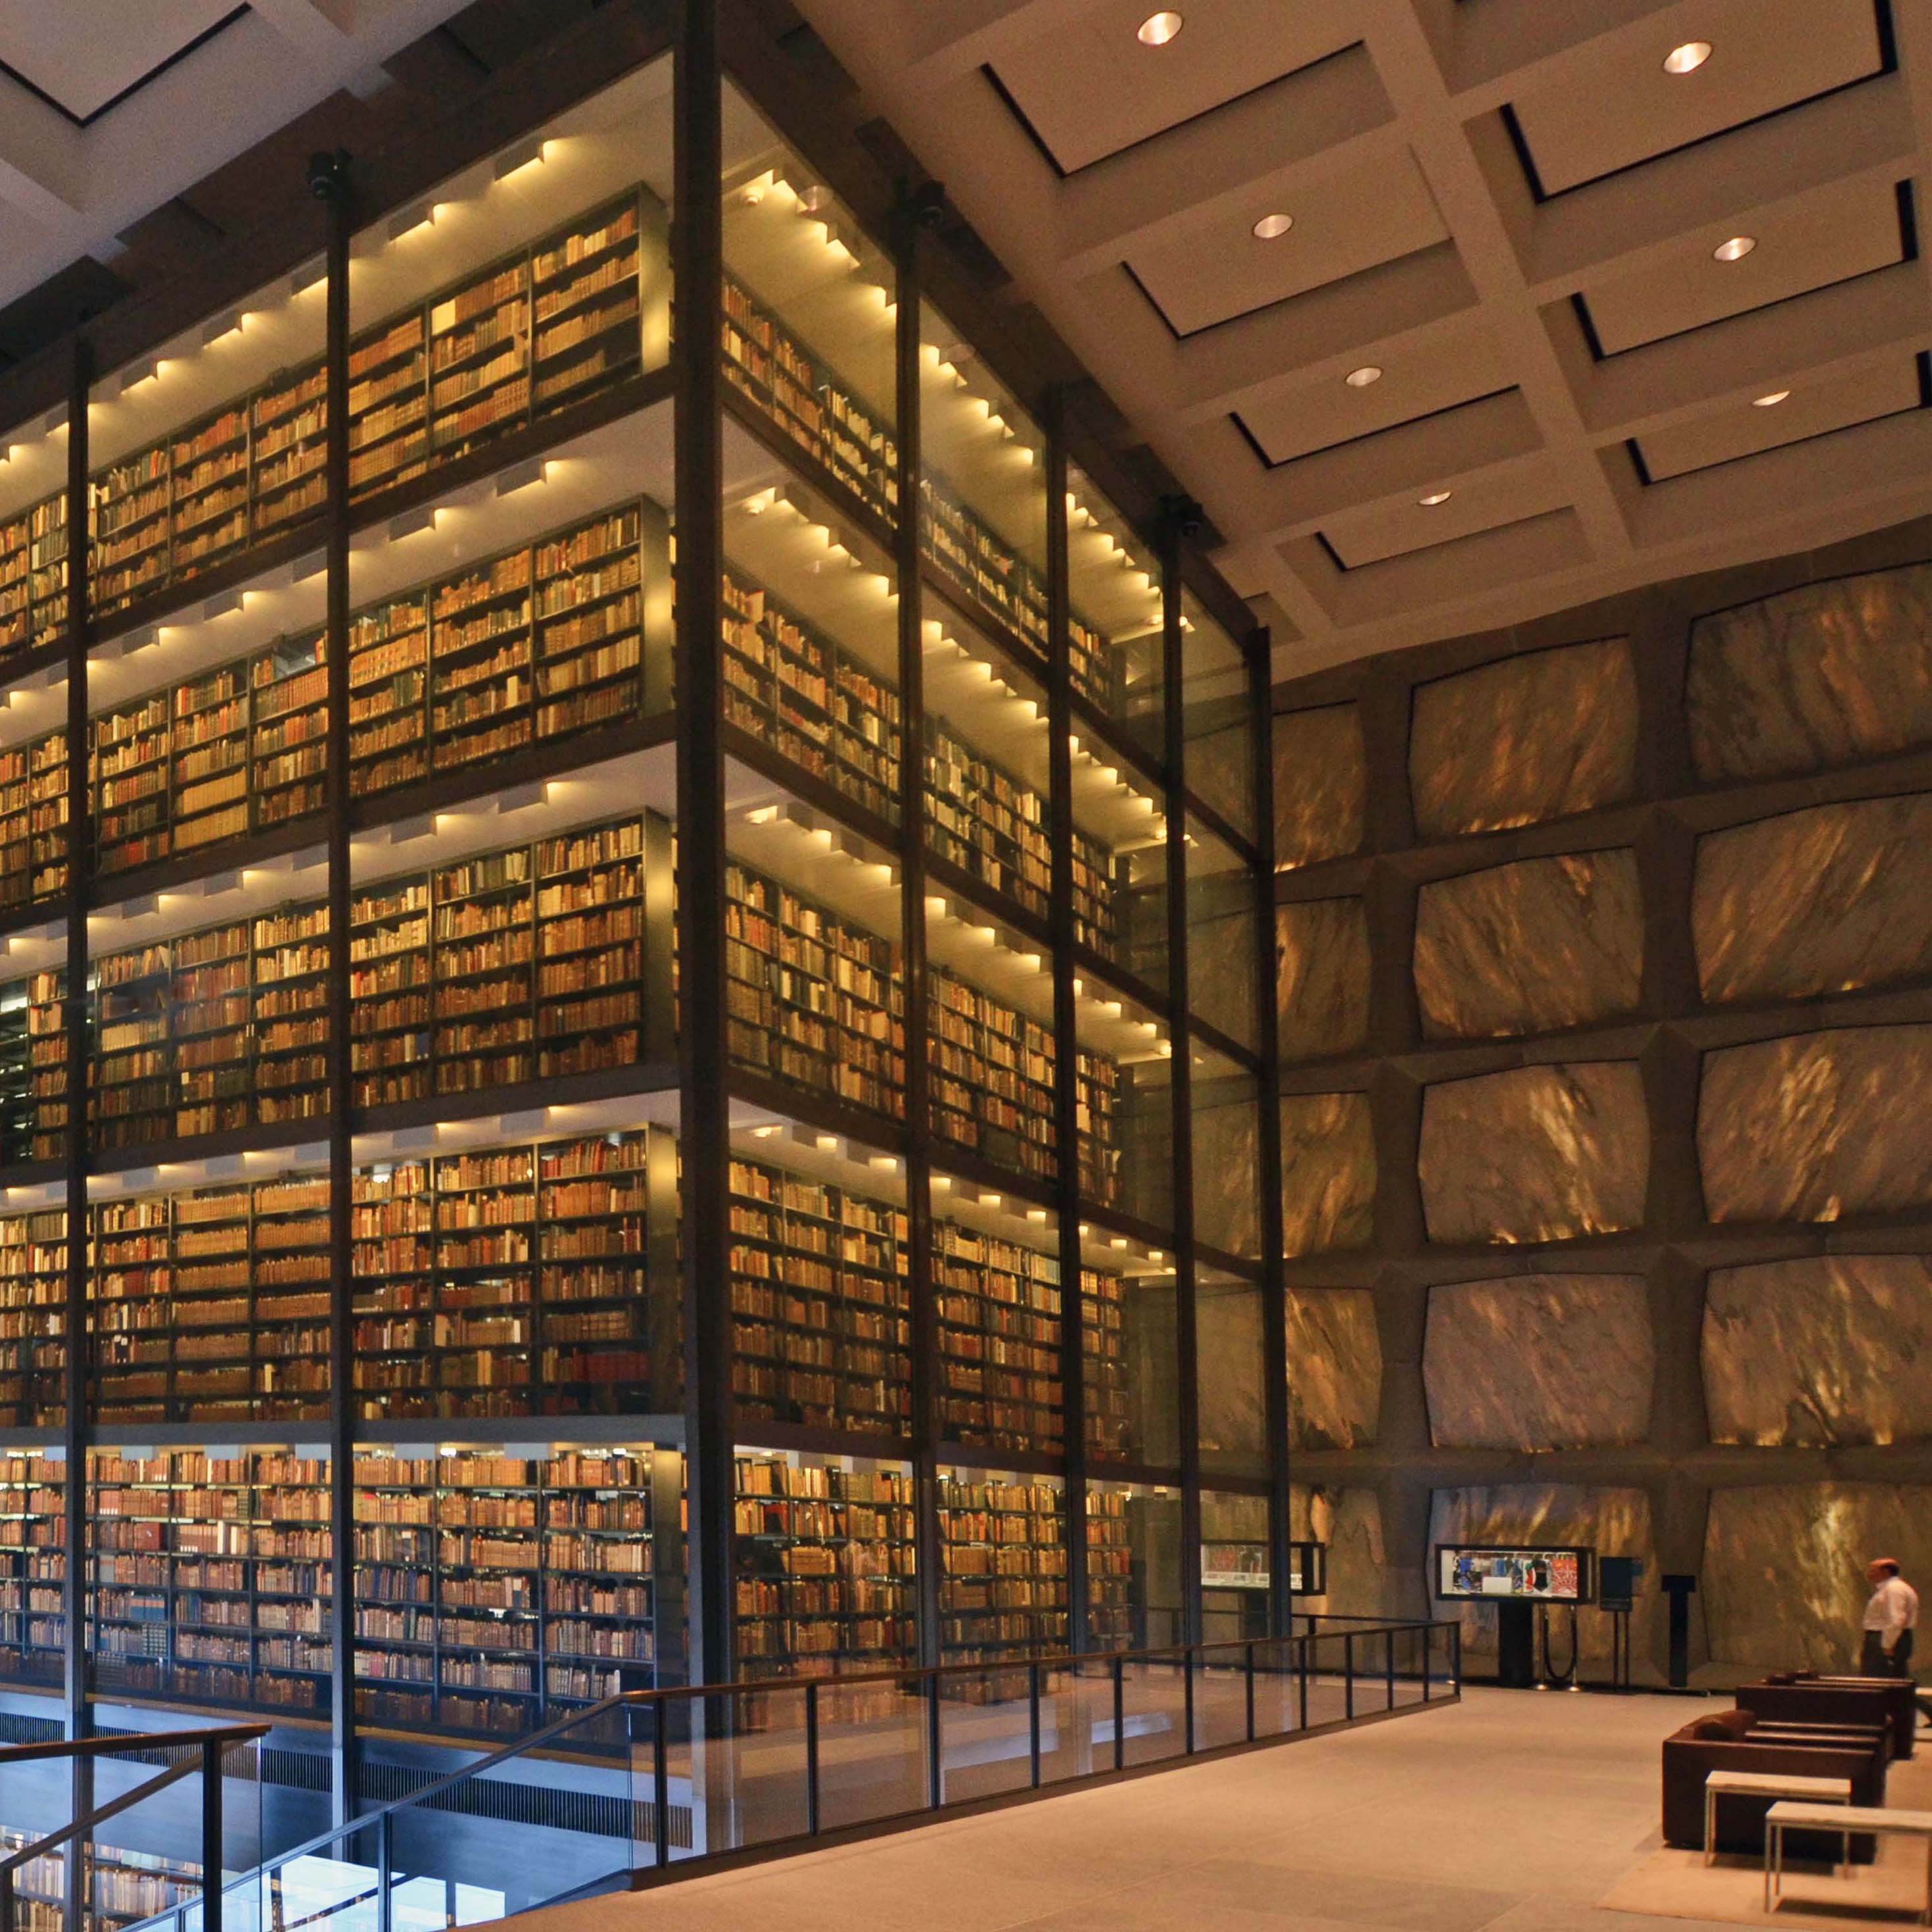 The bookstacks inside Beinecke Library